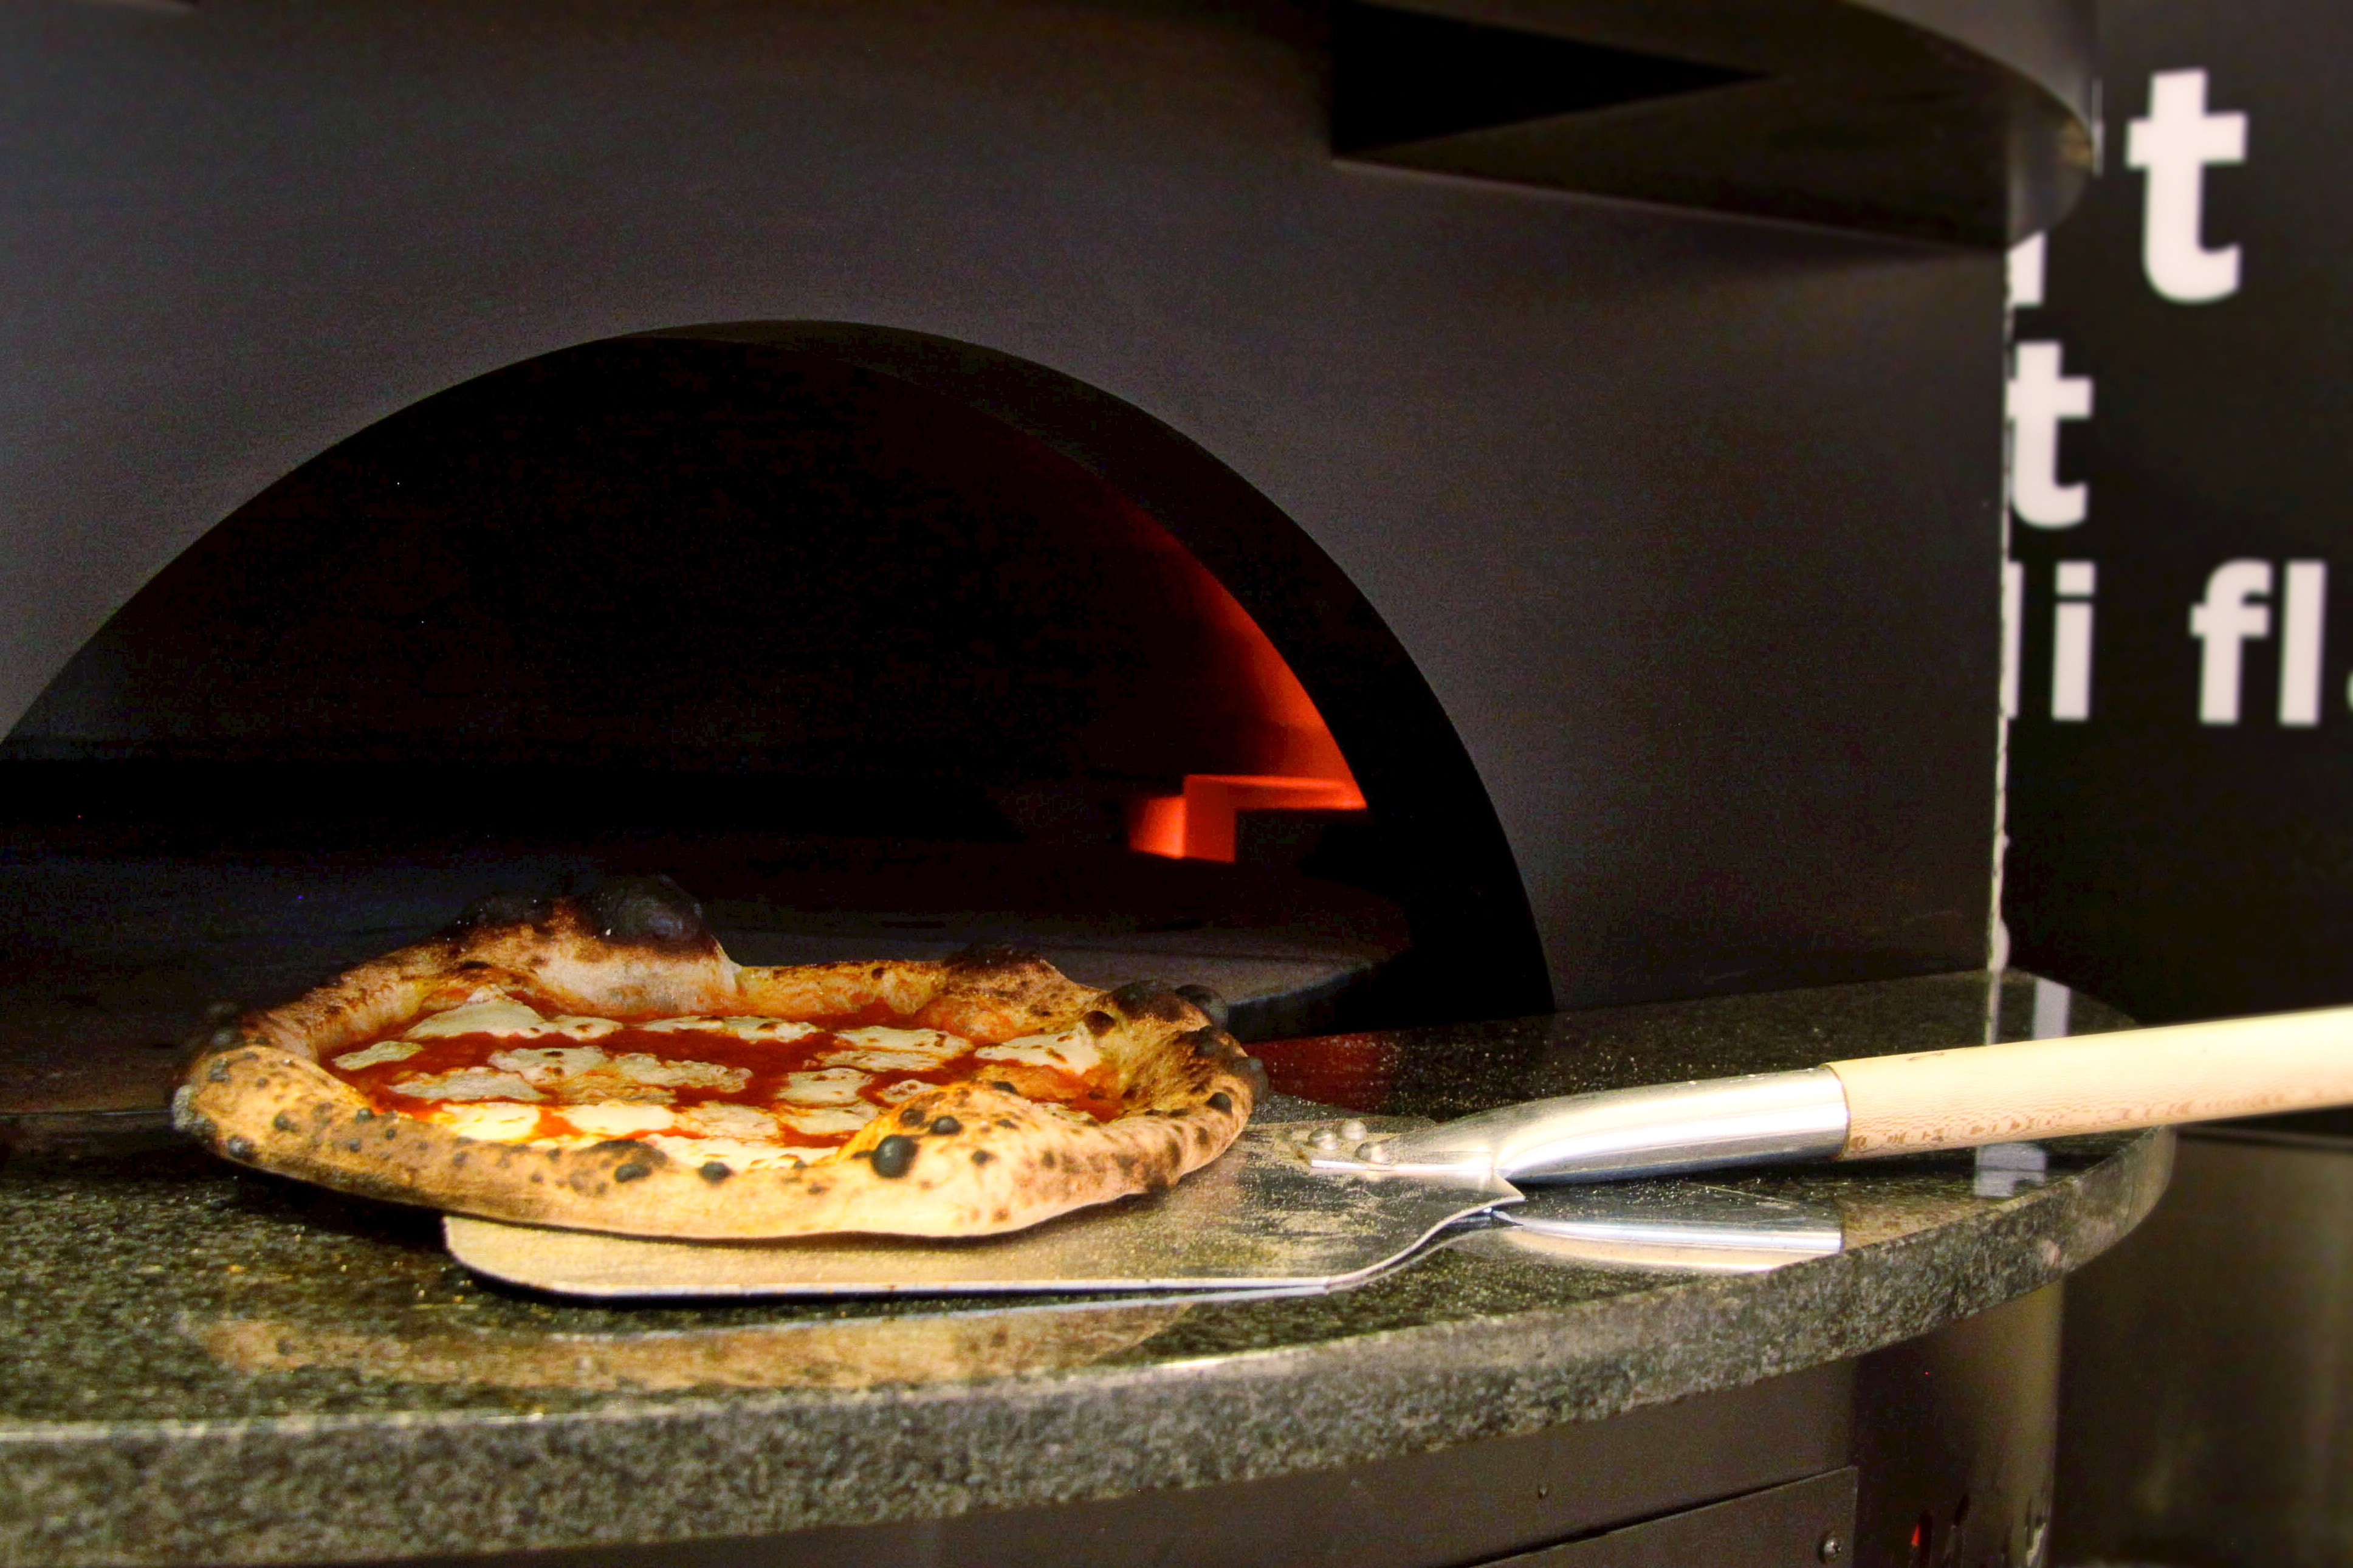 A pizza being pulled out of a pizza oven